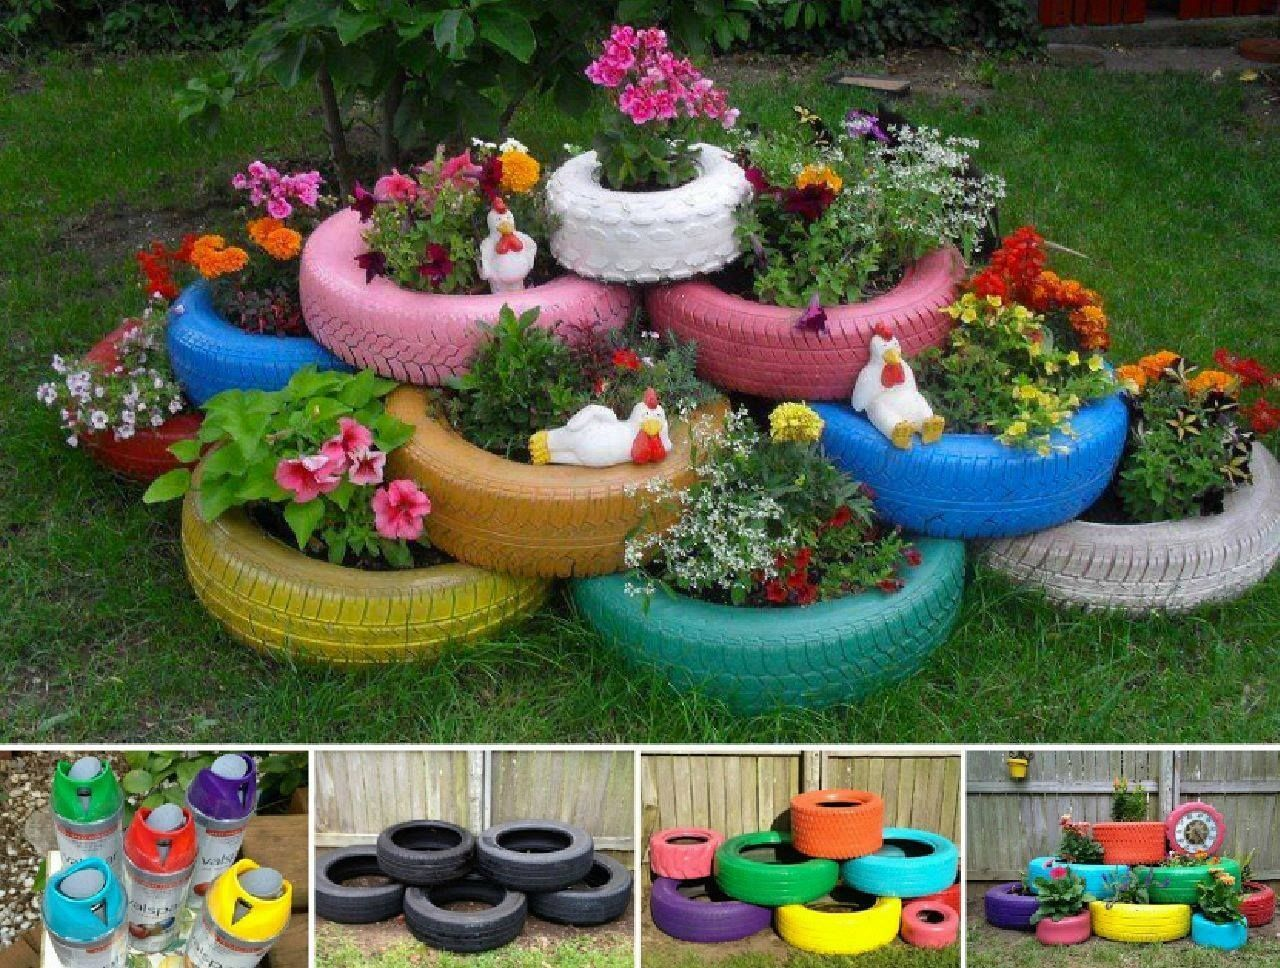 DIY Tire Garden Pictures, Photos, and Images for Facebook, Tumblr ...